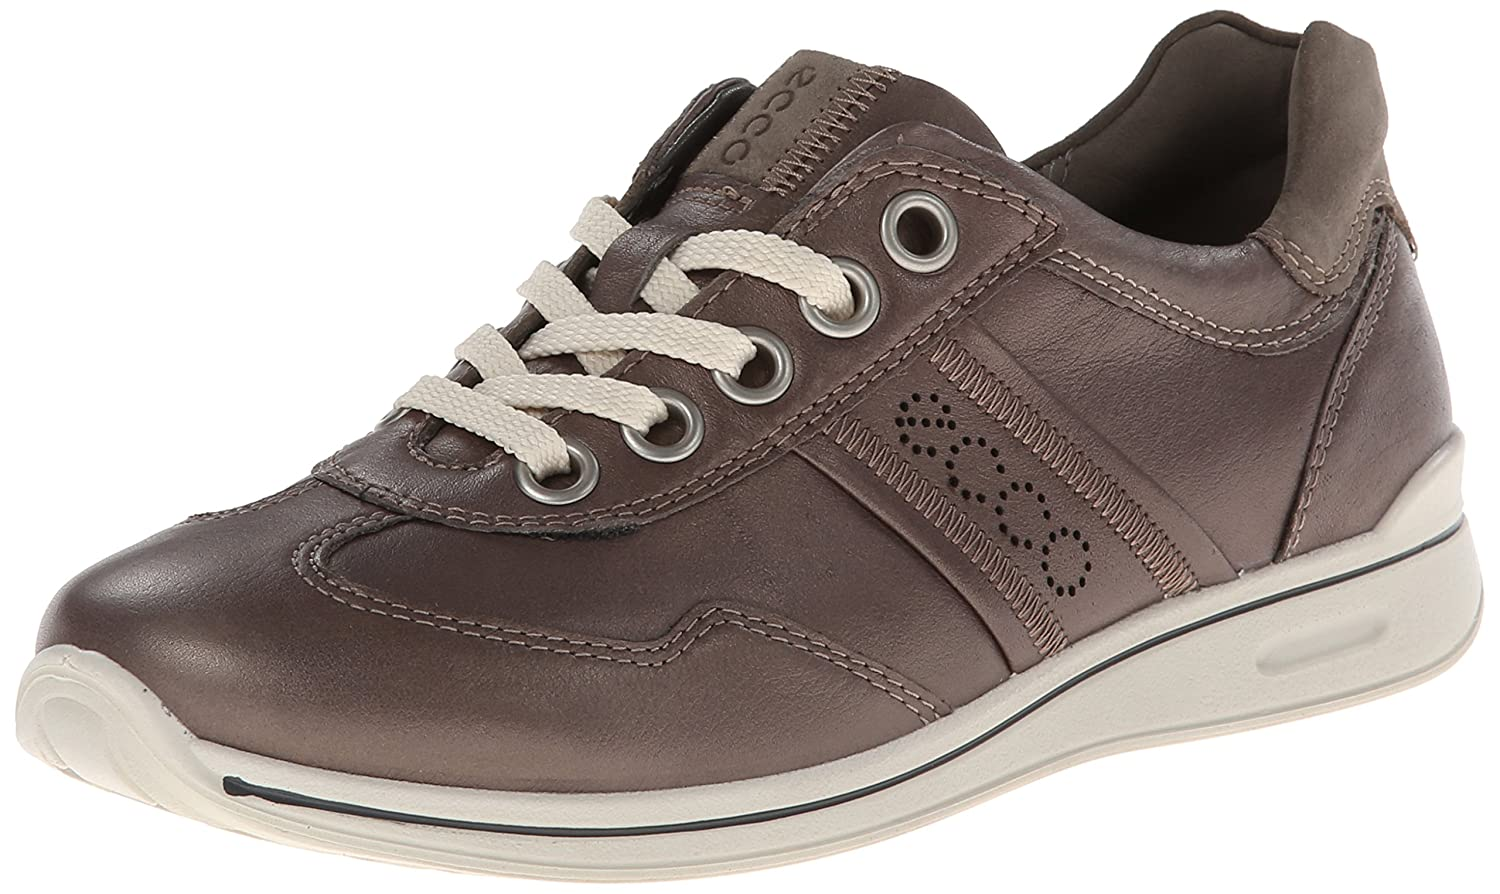 ECCO Women's Mobile II Premium Flat B00HDG5FHM 41 EU/10-10.5 M US|Warm Grey